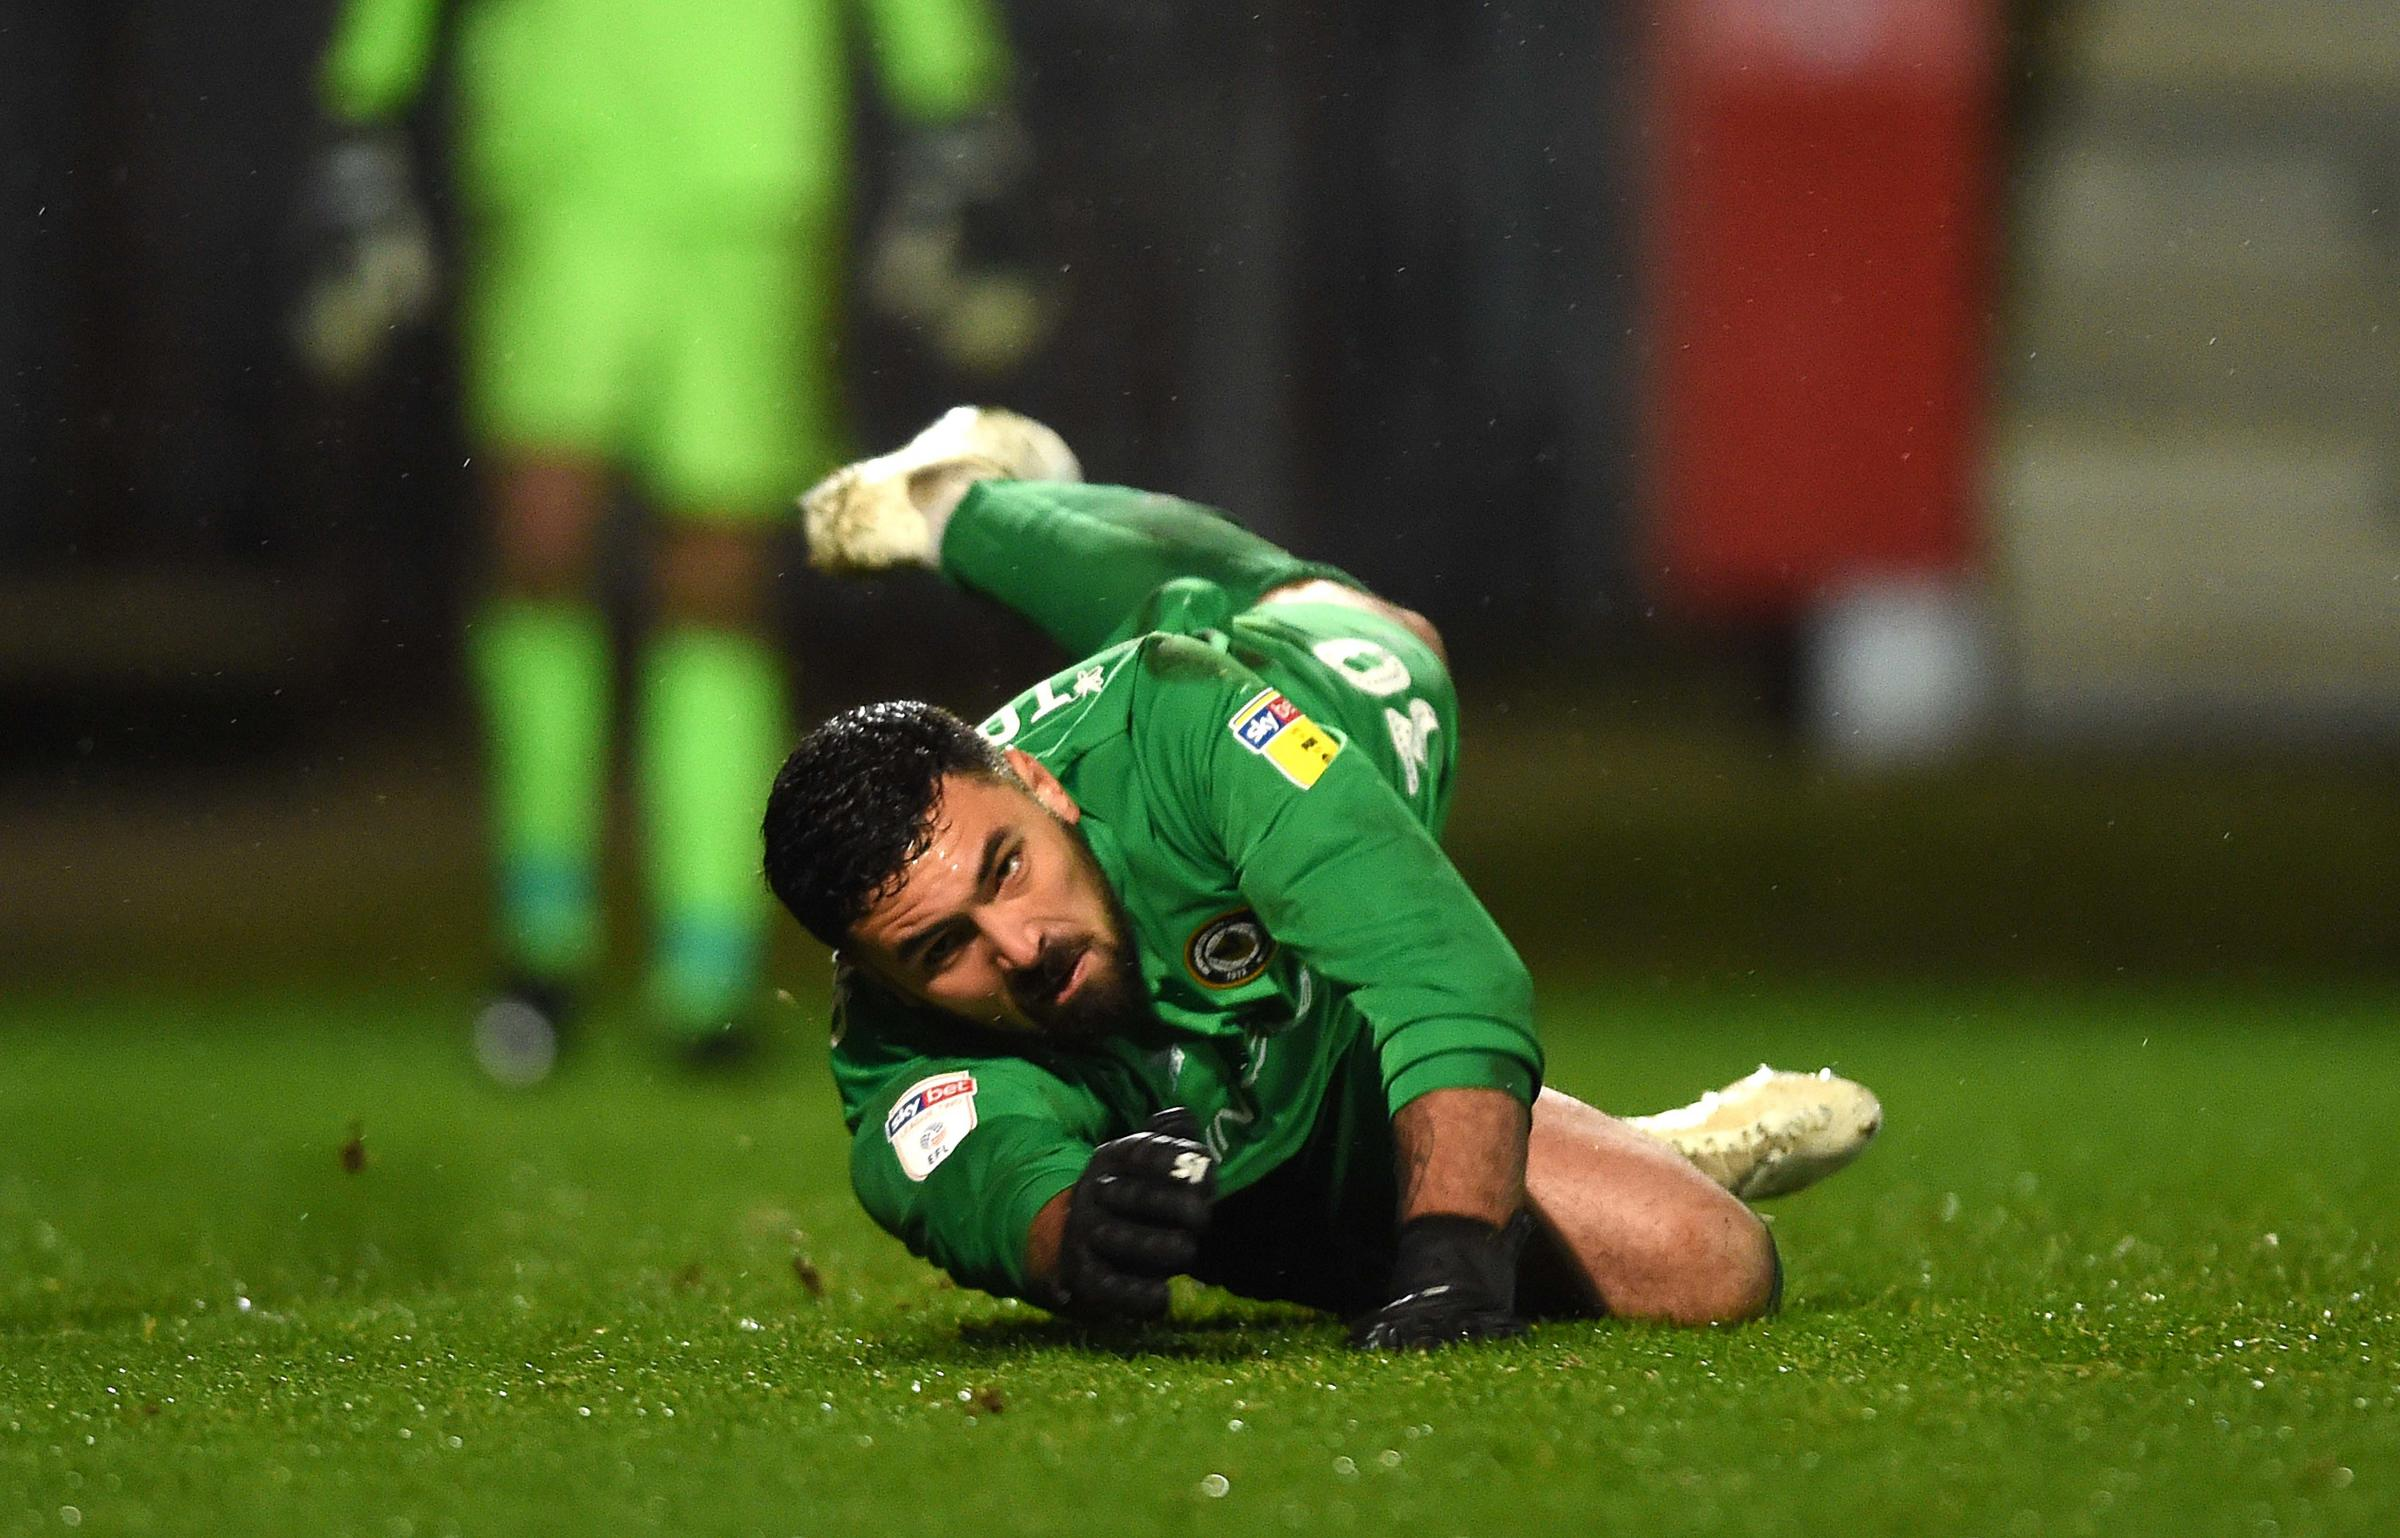 INJURED: Newport County's number two goalkeeper Nick Townsend is unlikely to be fit to play again this season